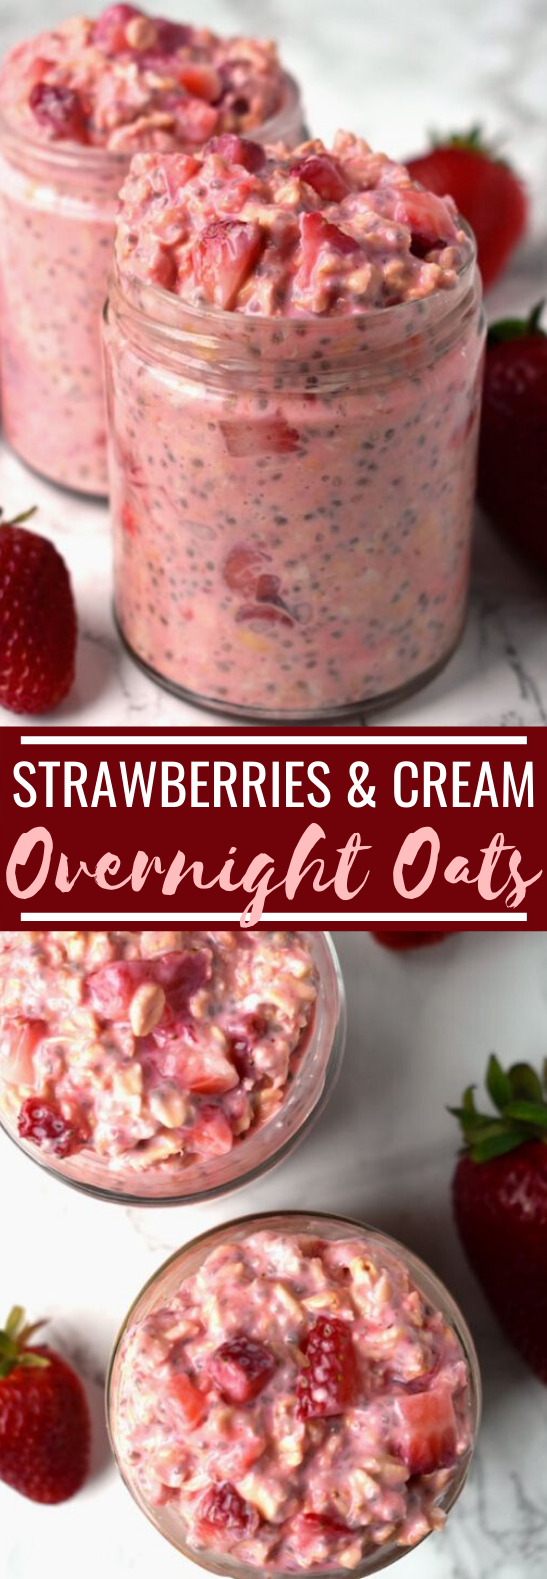 Strawberries and Cream Overnight Oats #healthy #breakfast #oats #pudding #quick